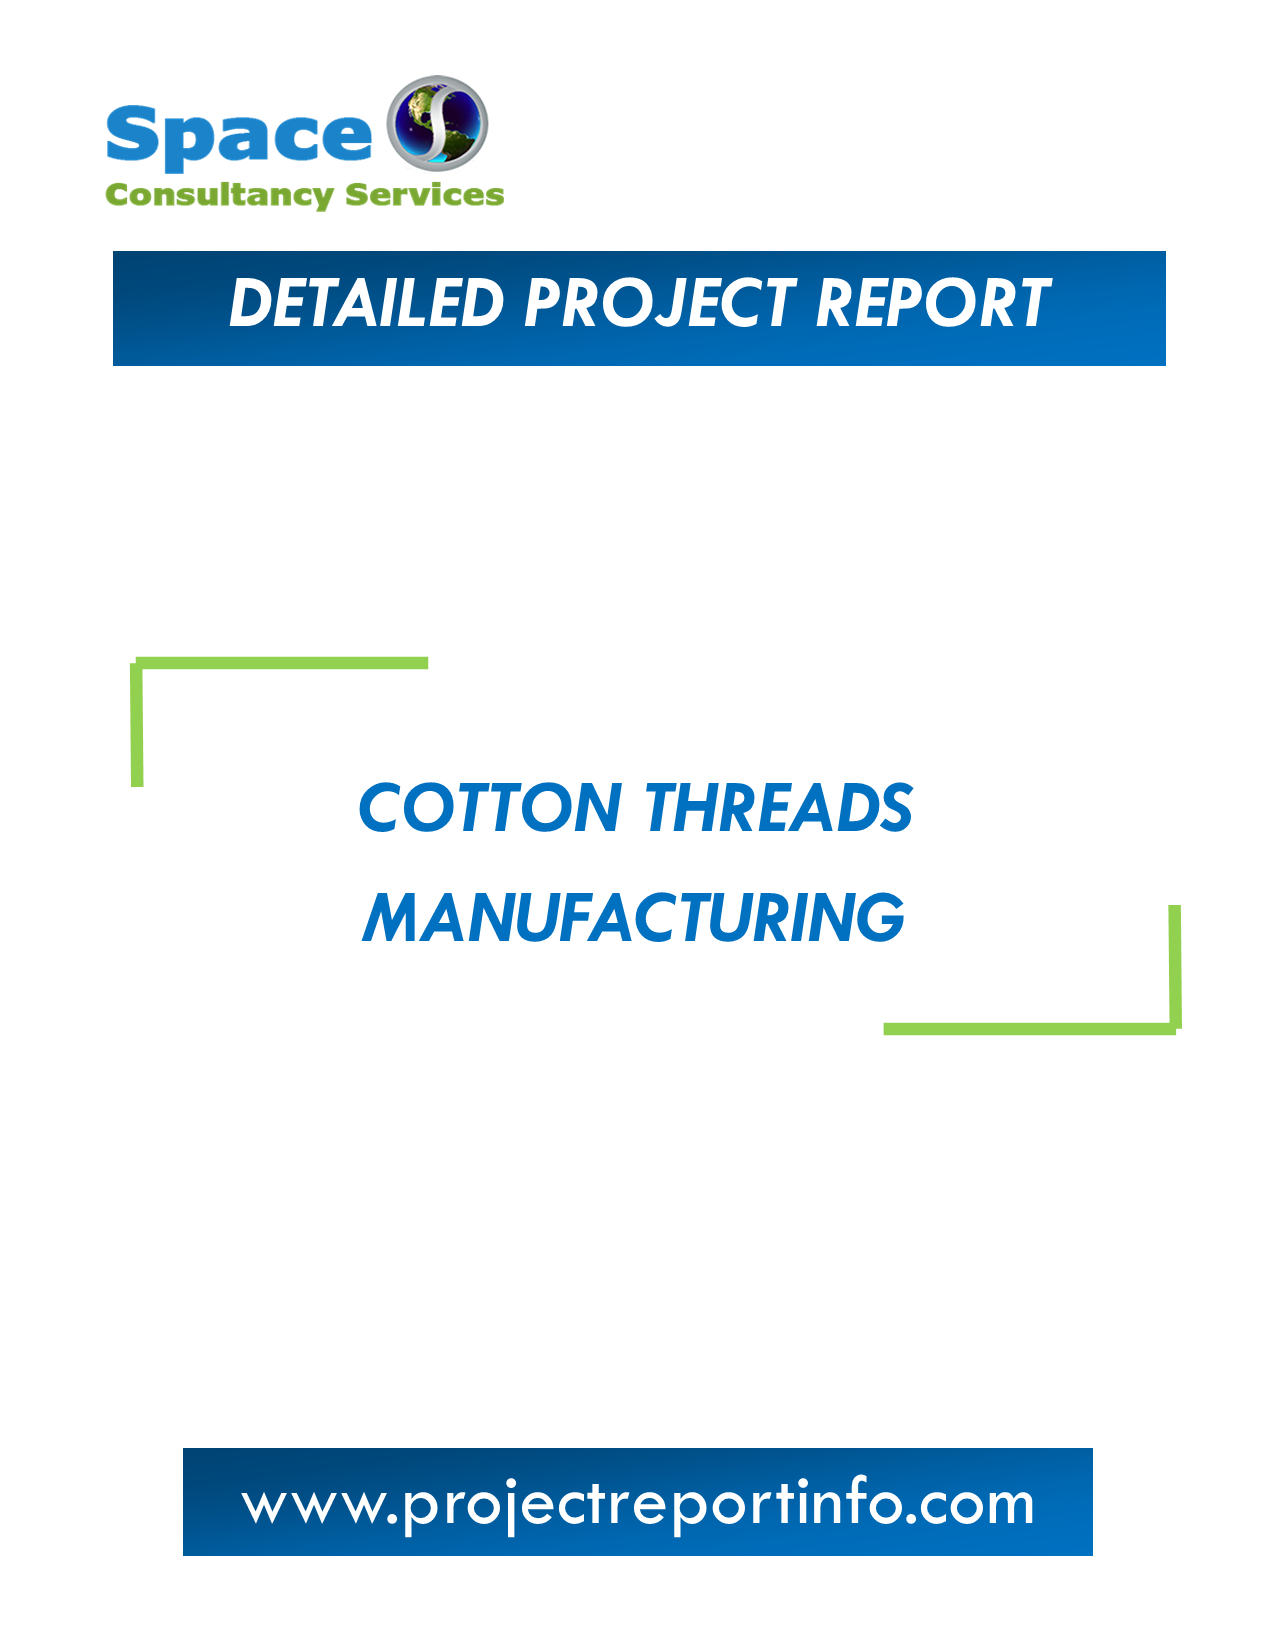 Project Report on Cotton Threads Manufacturing